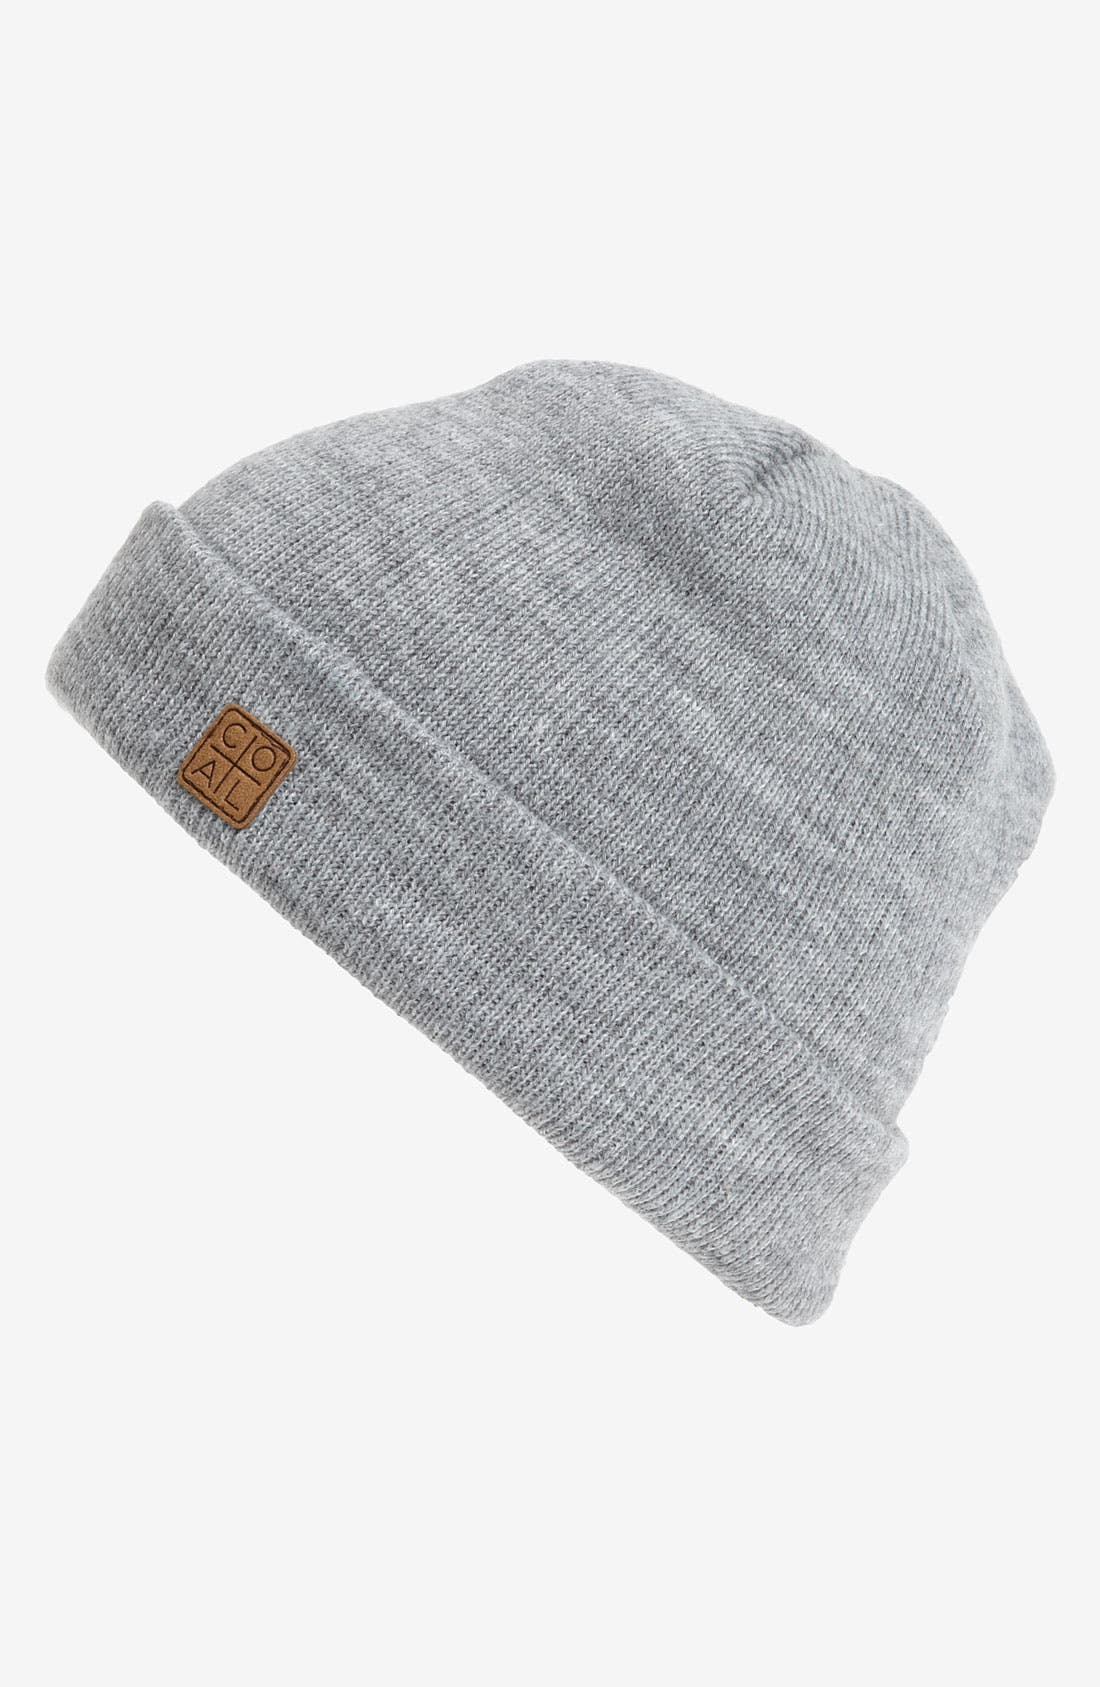 Alternate Image 1 Selected - Coal 'Harbor' Knit Cap